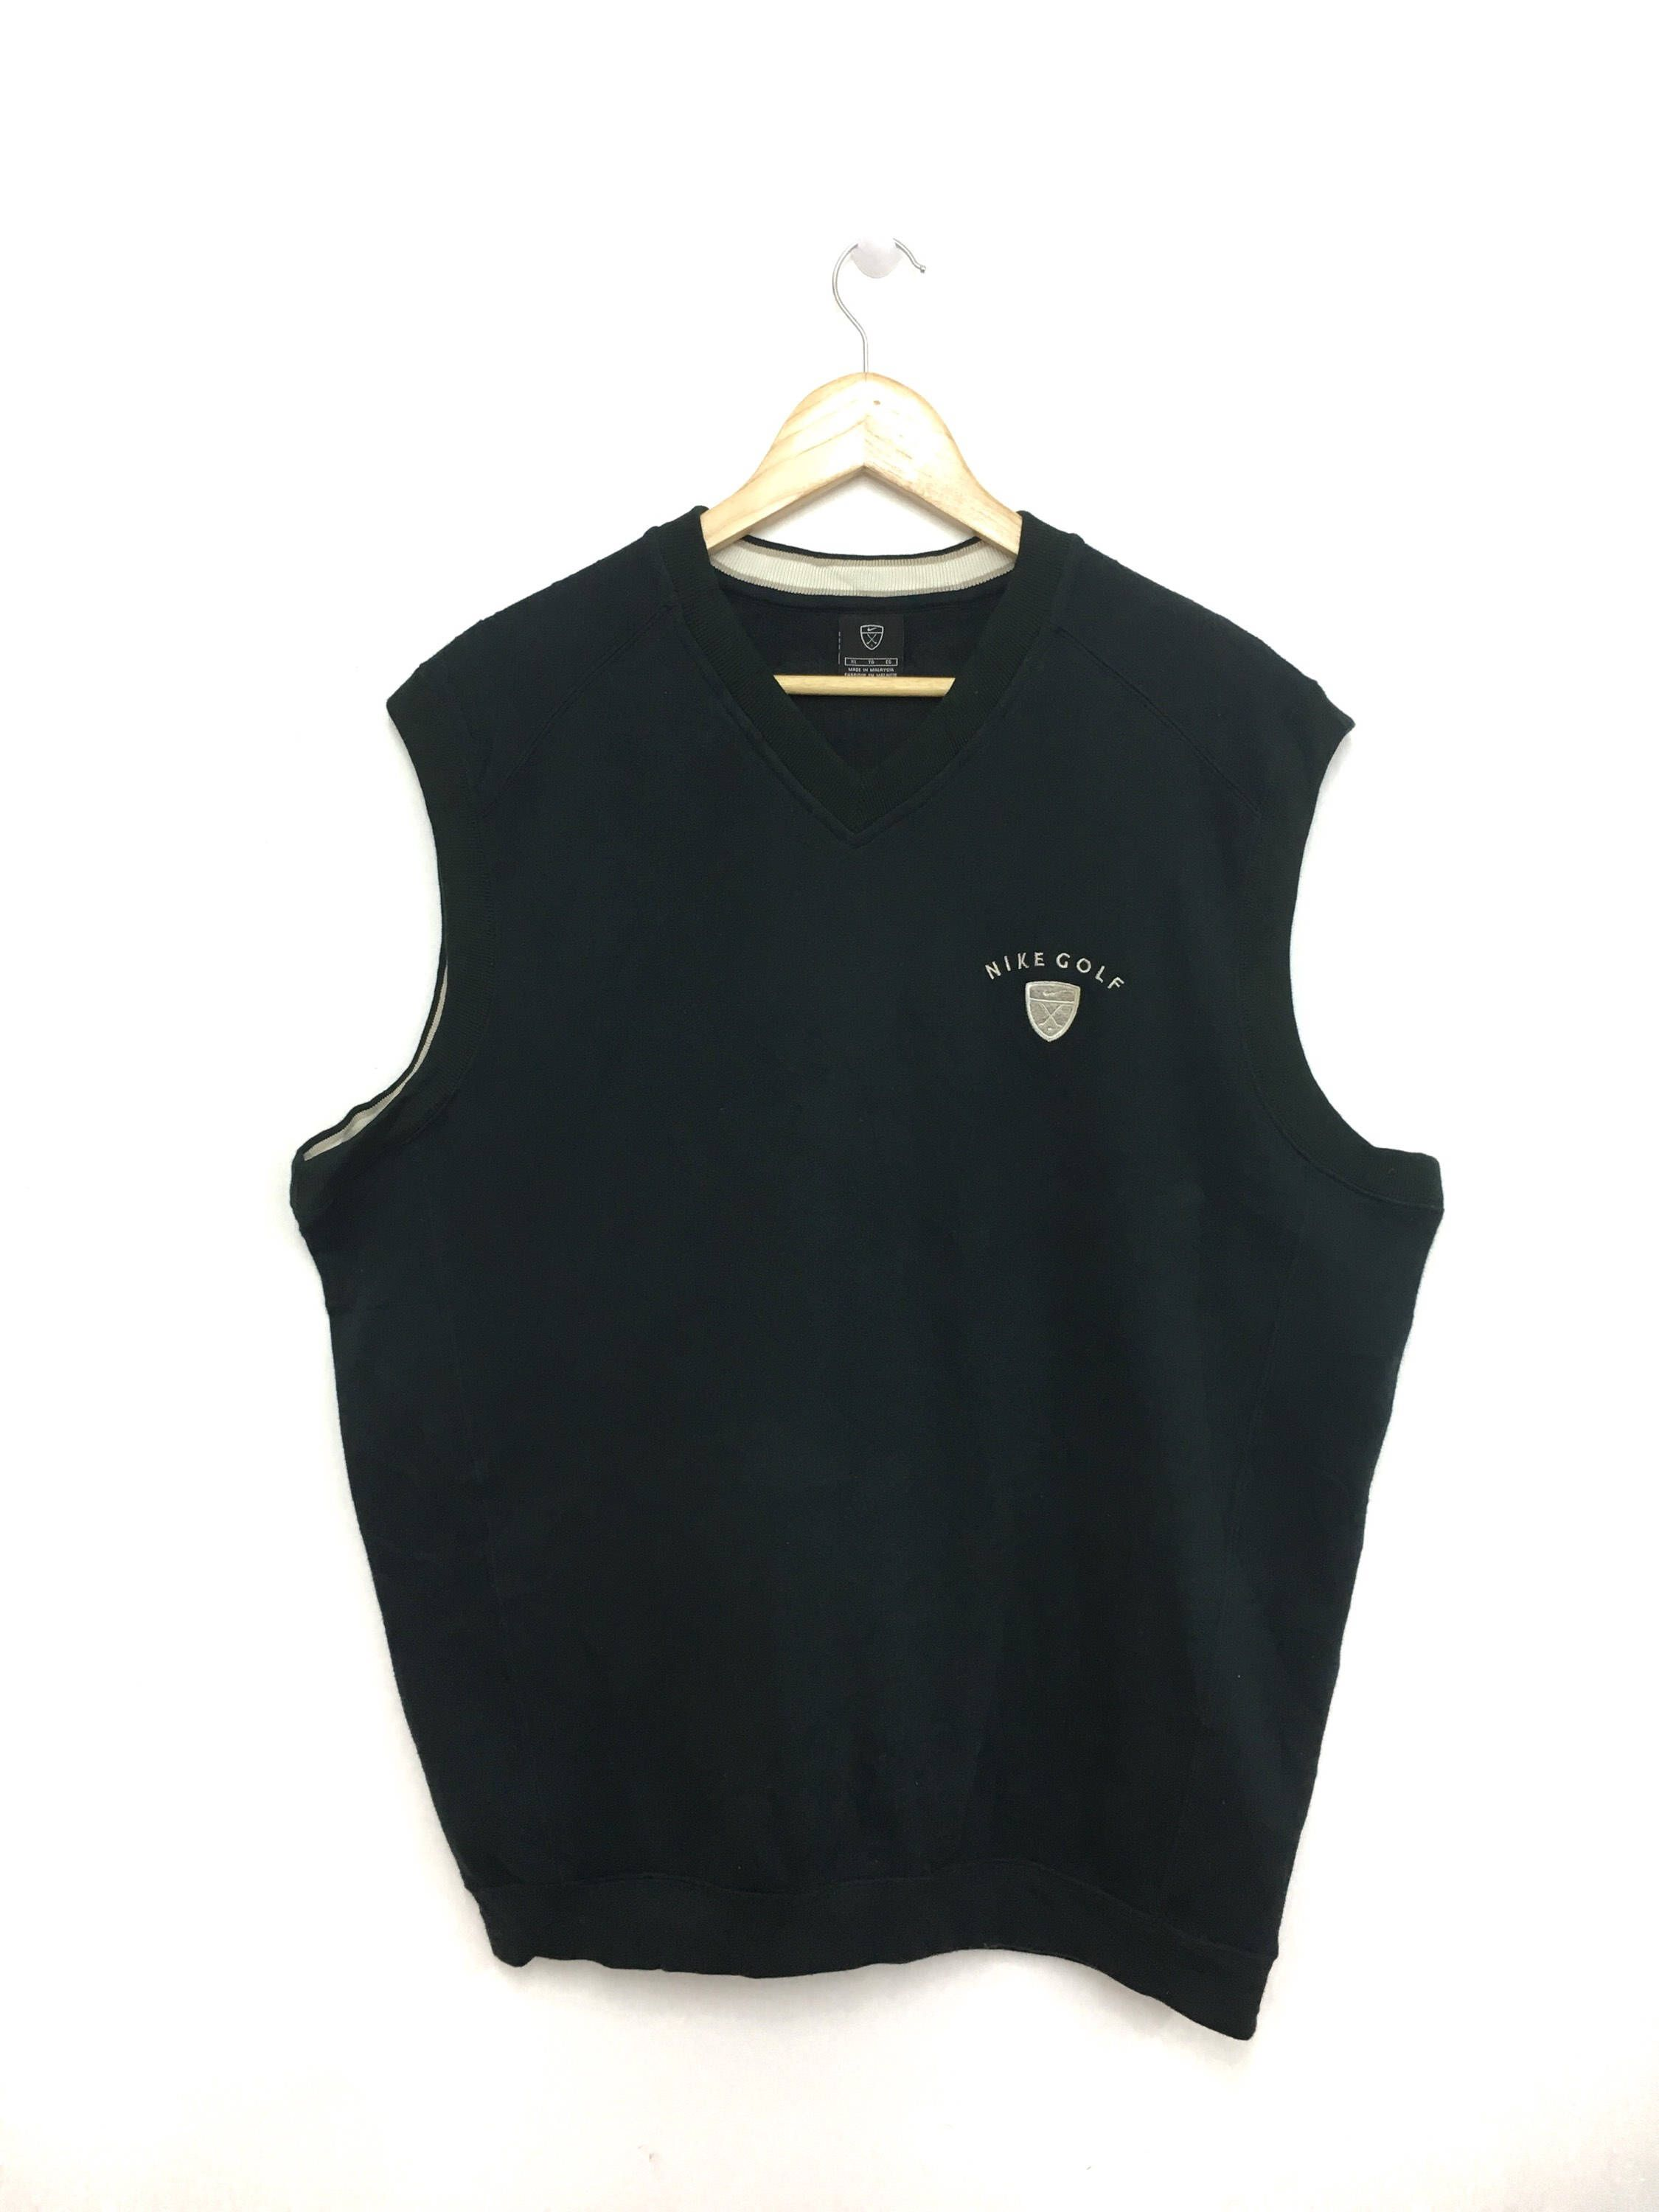 055172c866dd6 Nike golf tank top embroidery logo sportswear size black color jpg  2250x3000 The golf tank